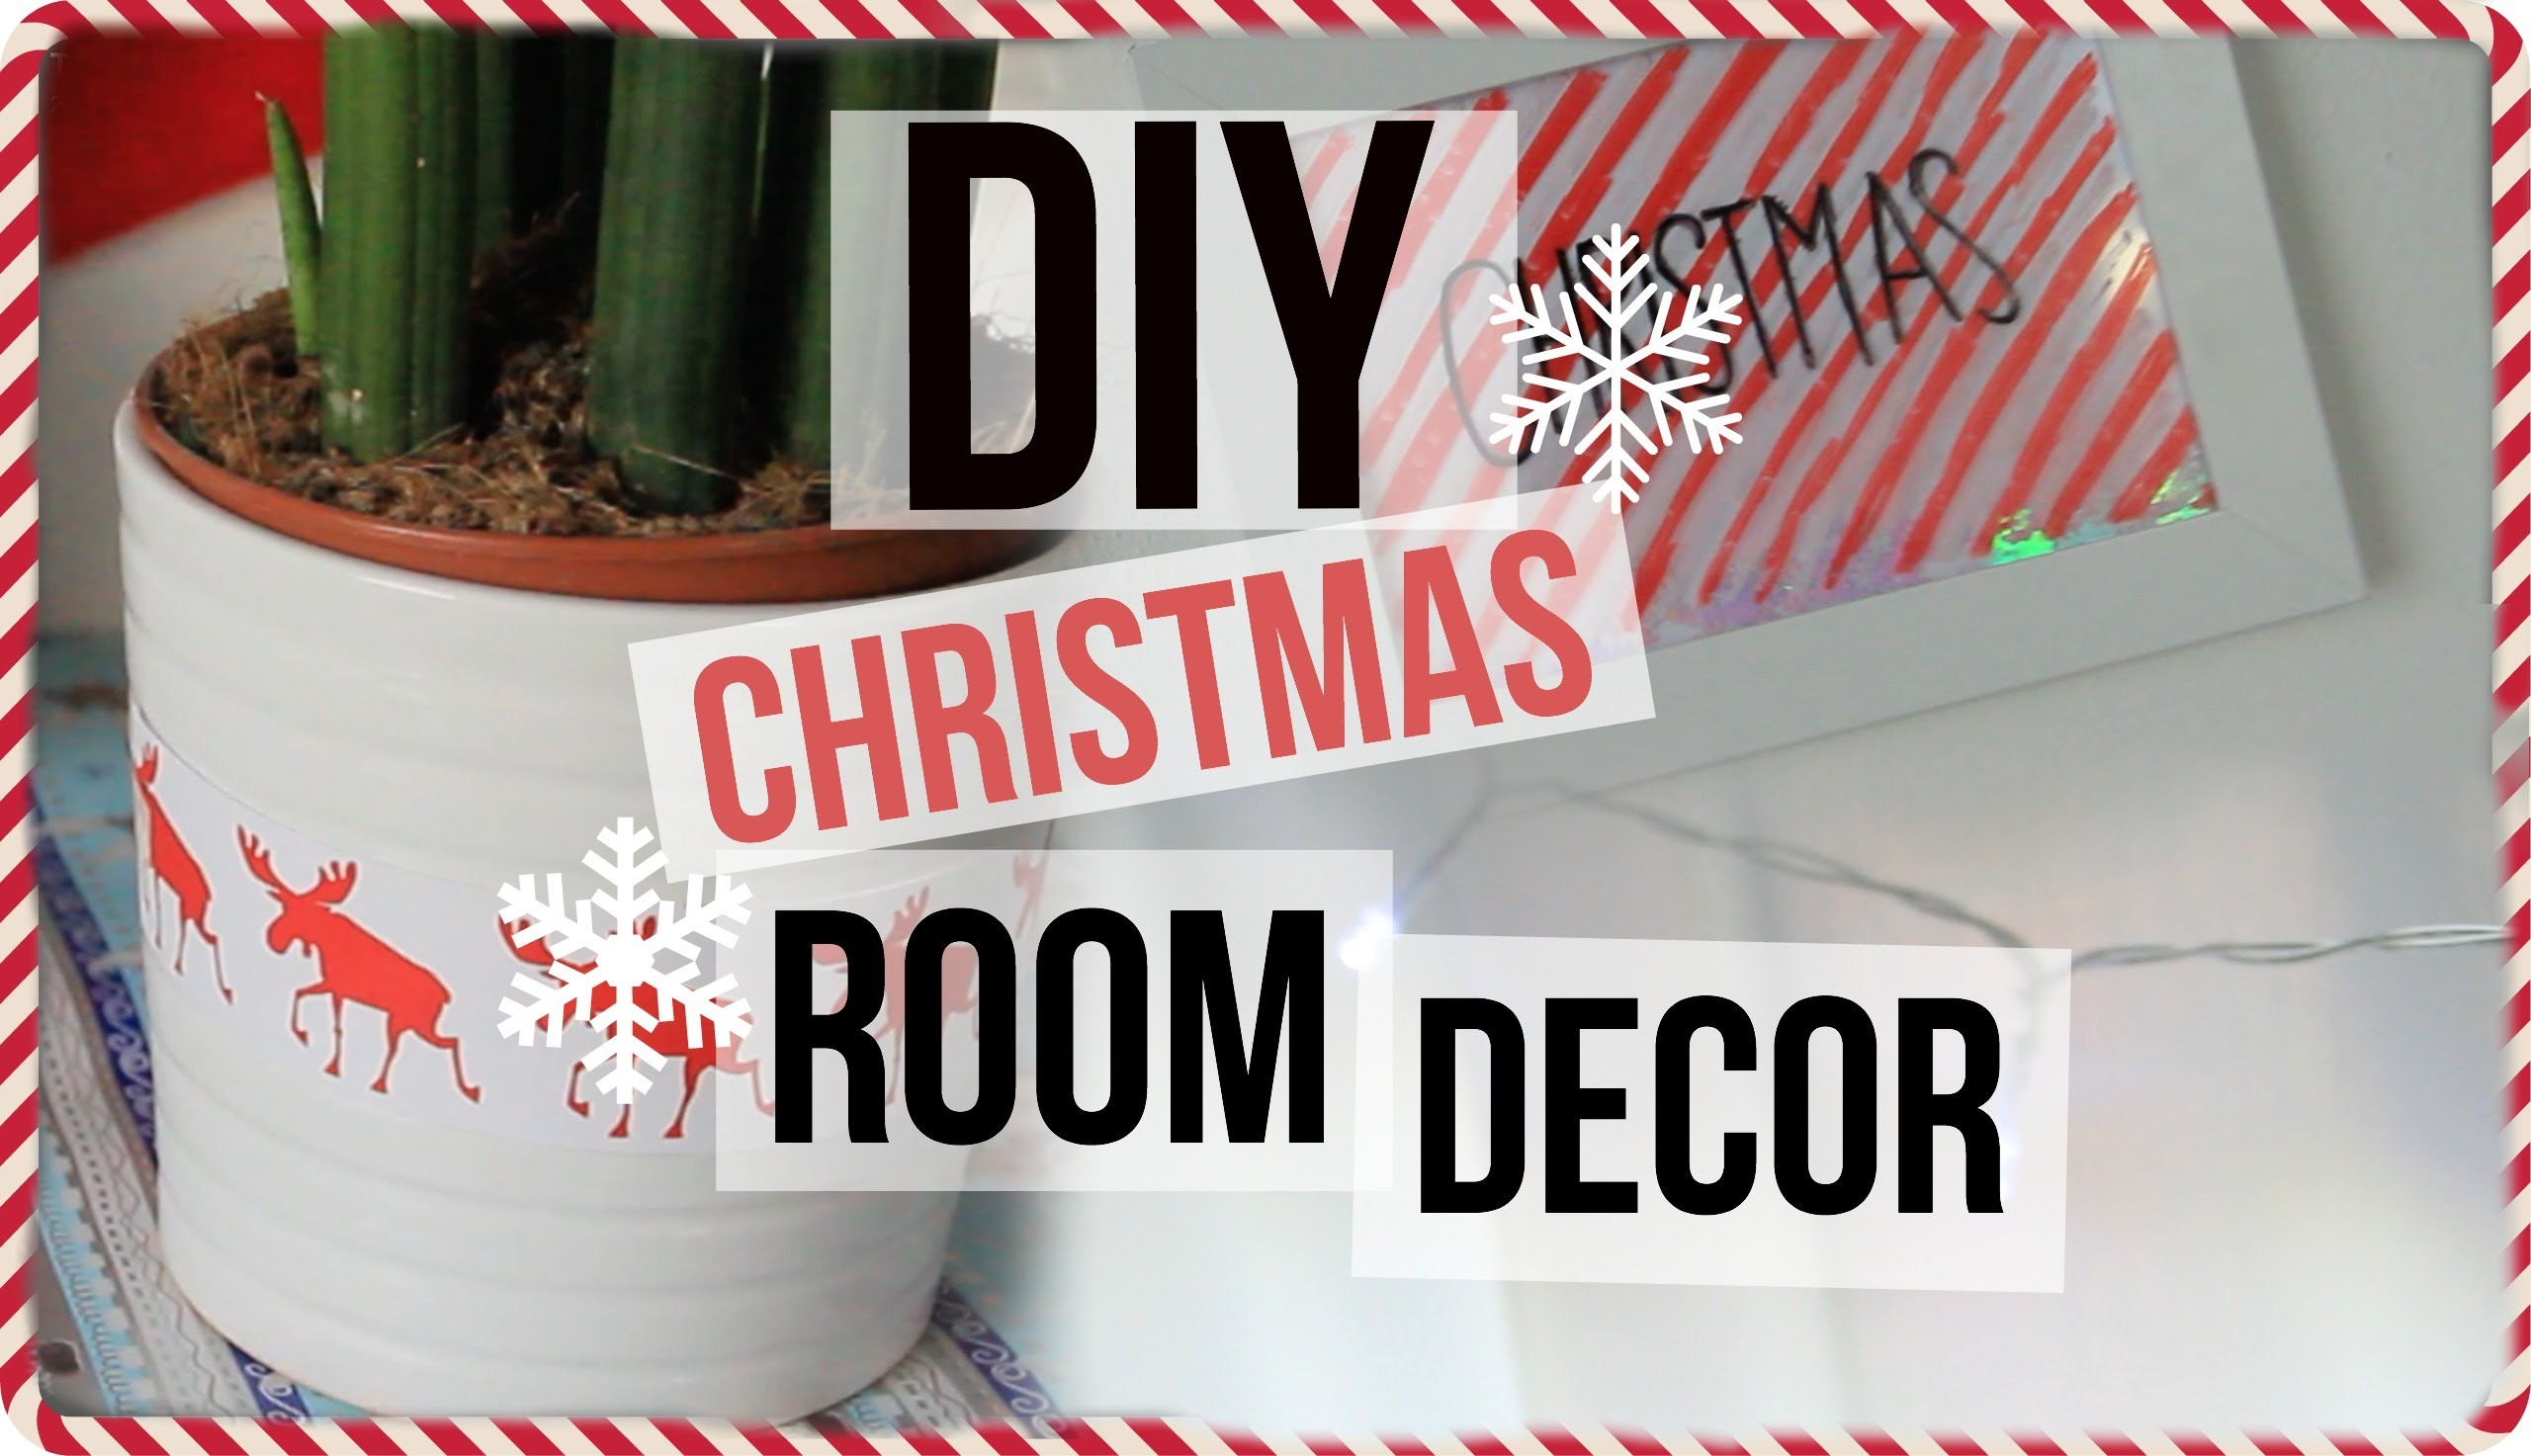 DIY Room Decor for Christmas 2015